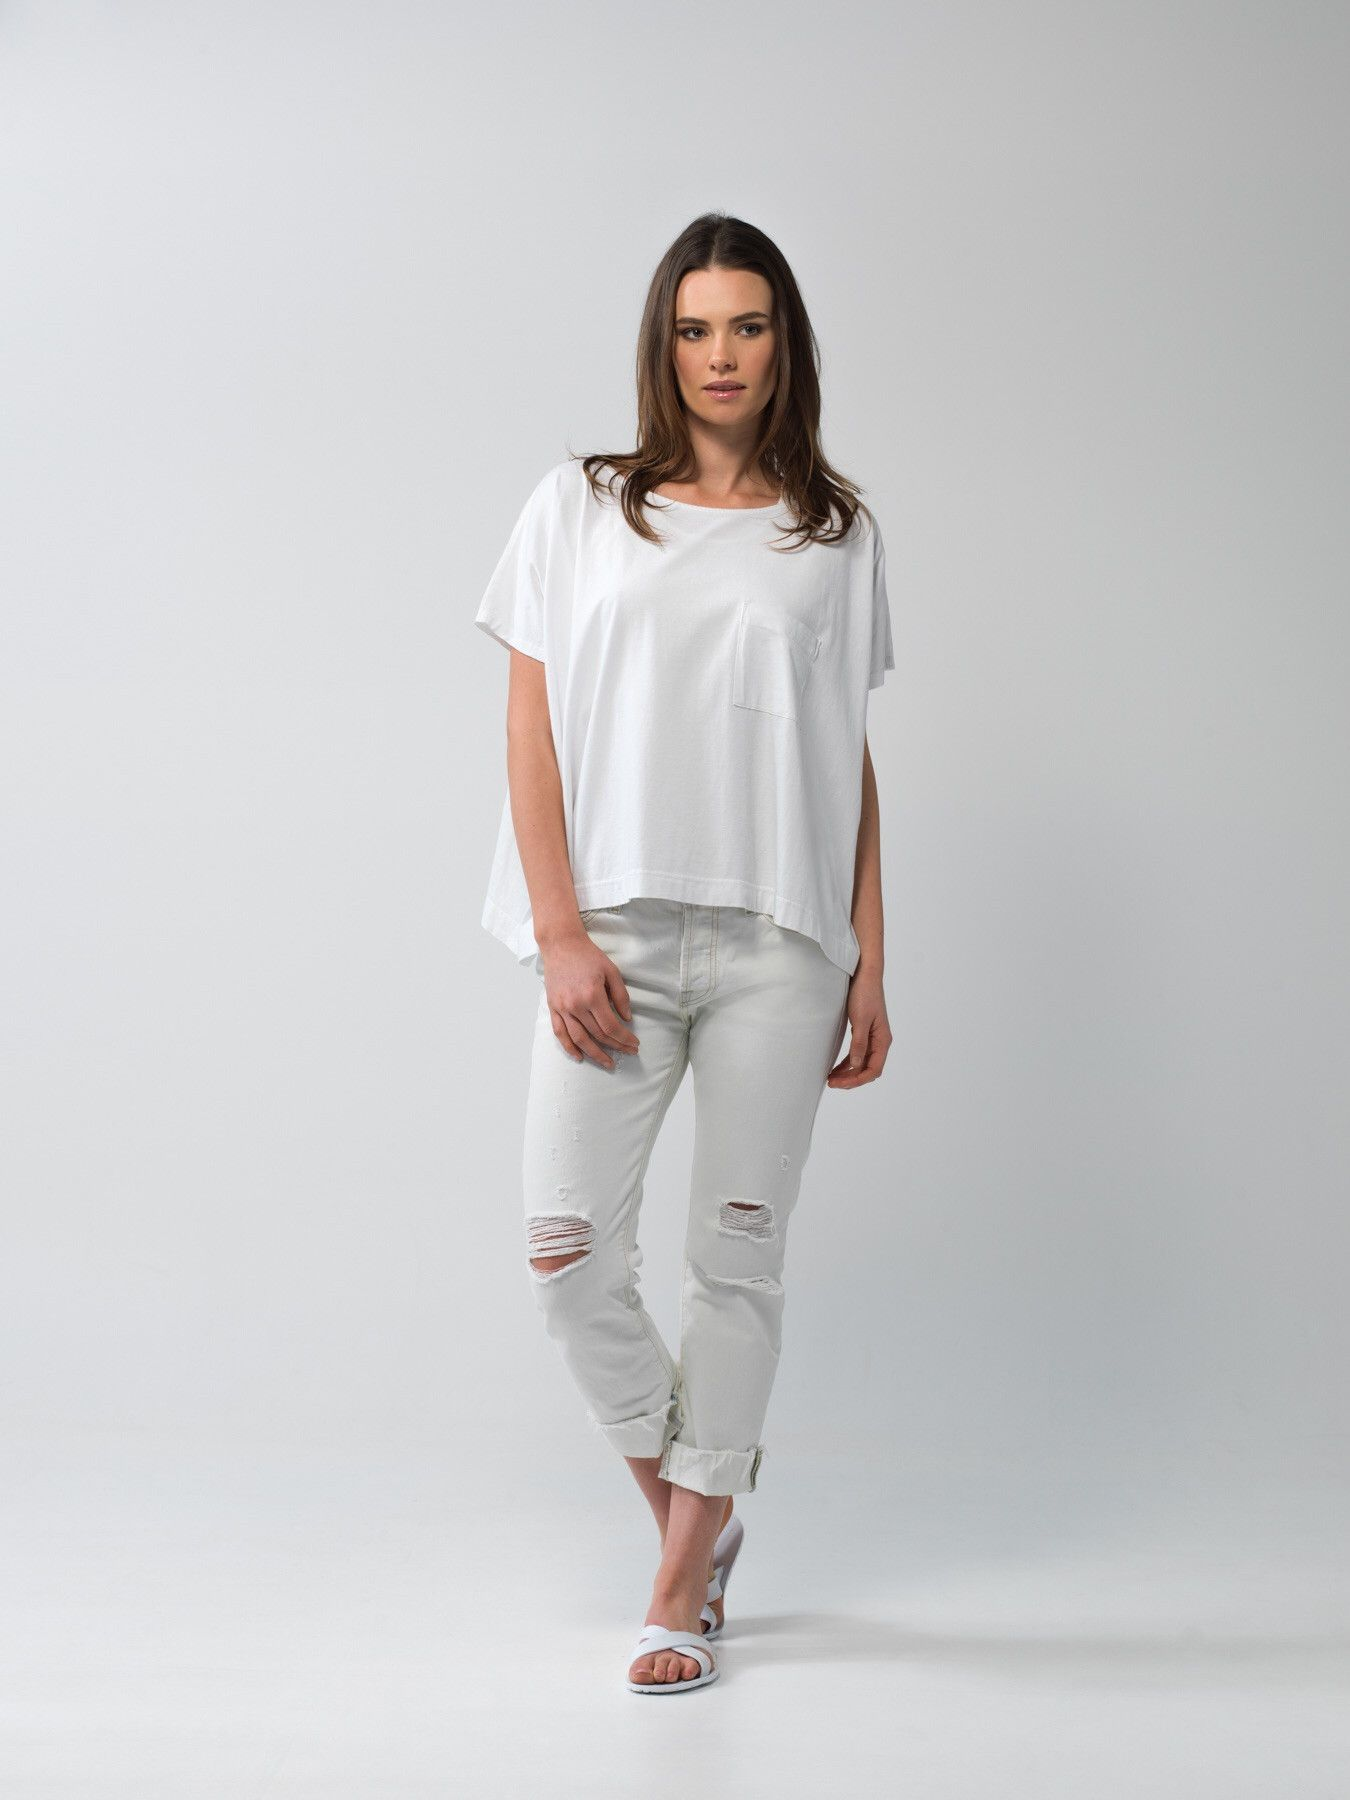 M.A. Dainty BeeGee top from Petrol Boutique